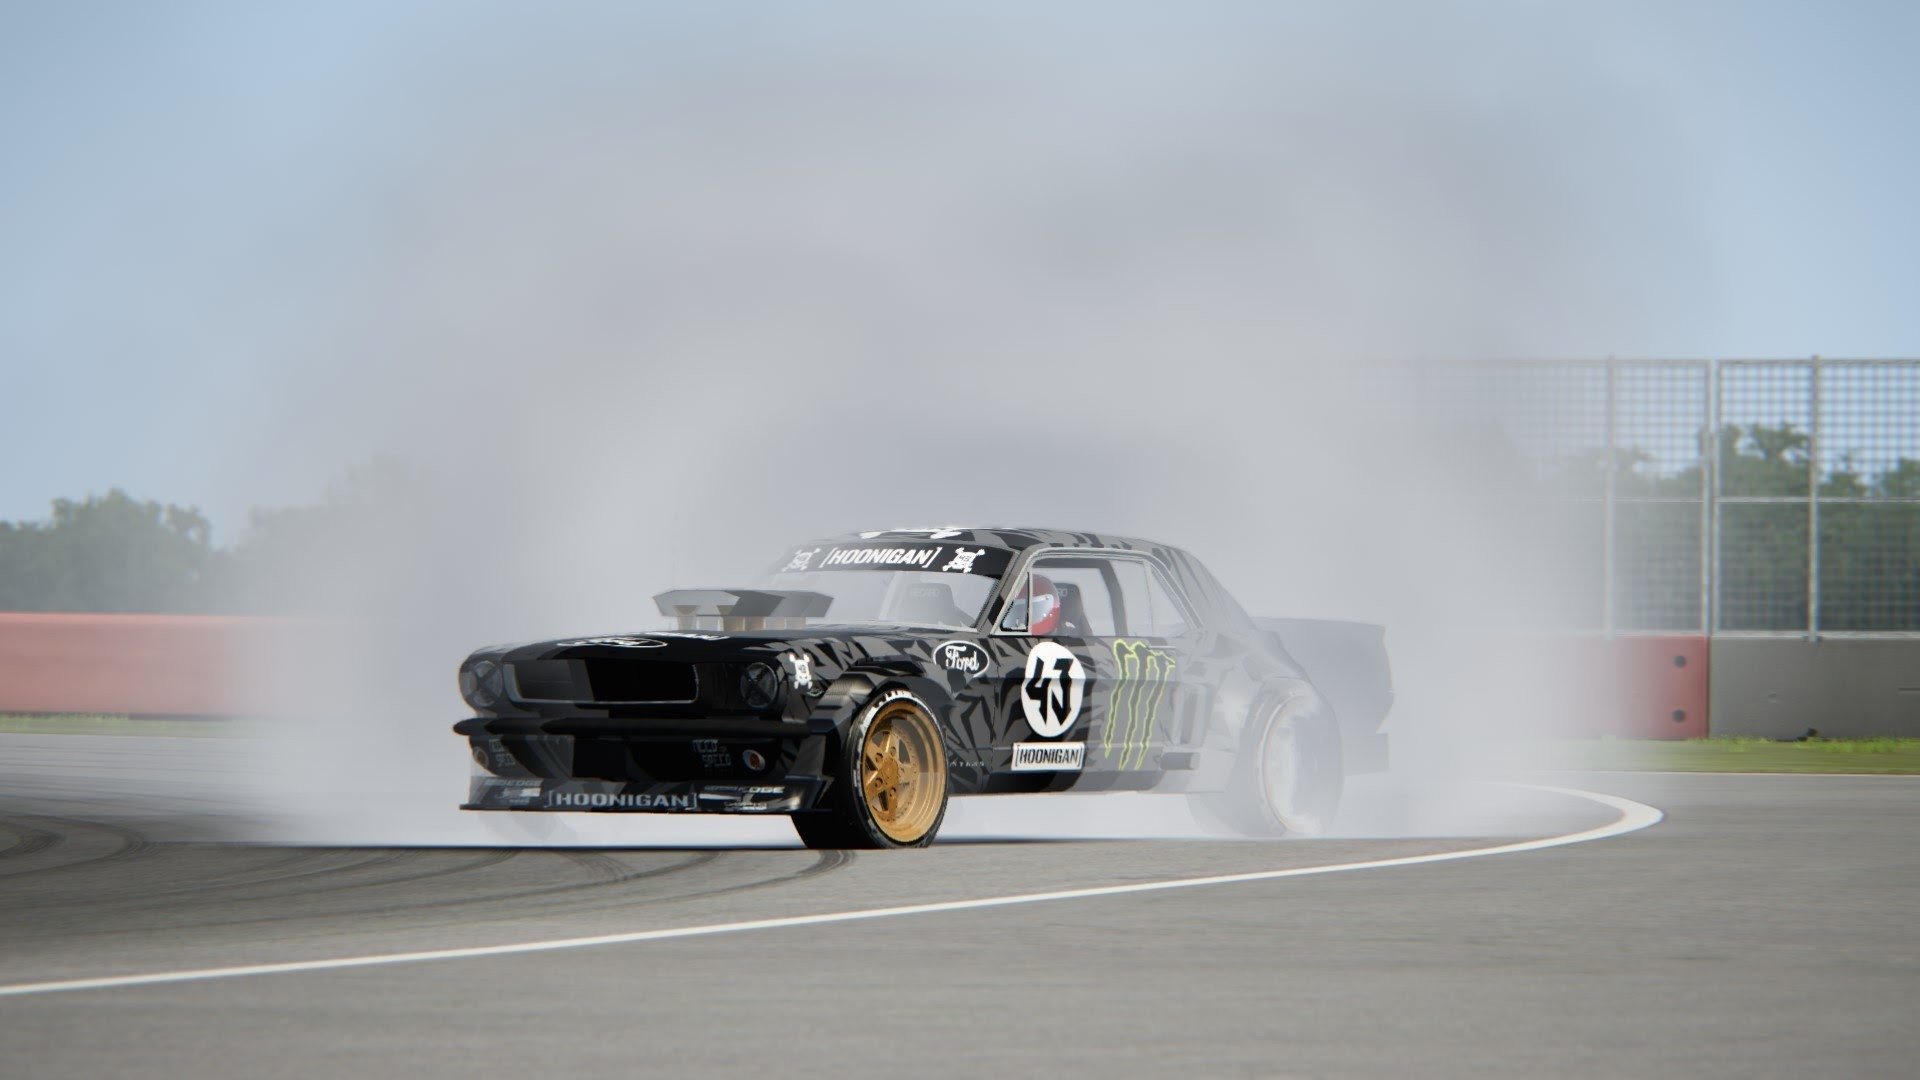 1920x1080 Assetto Corsa Silverstone International Ken Block Ford Hoonicorn Mustang  Drift 1080P 50 FPS